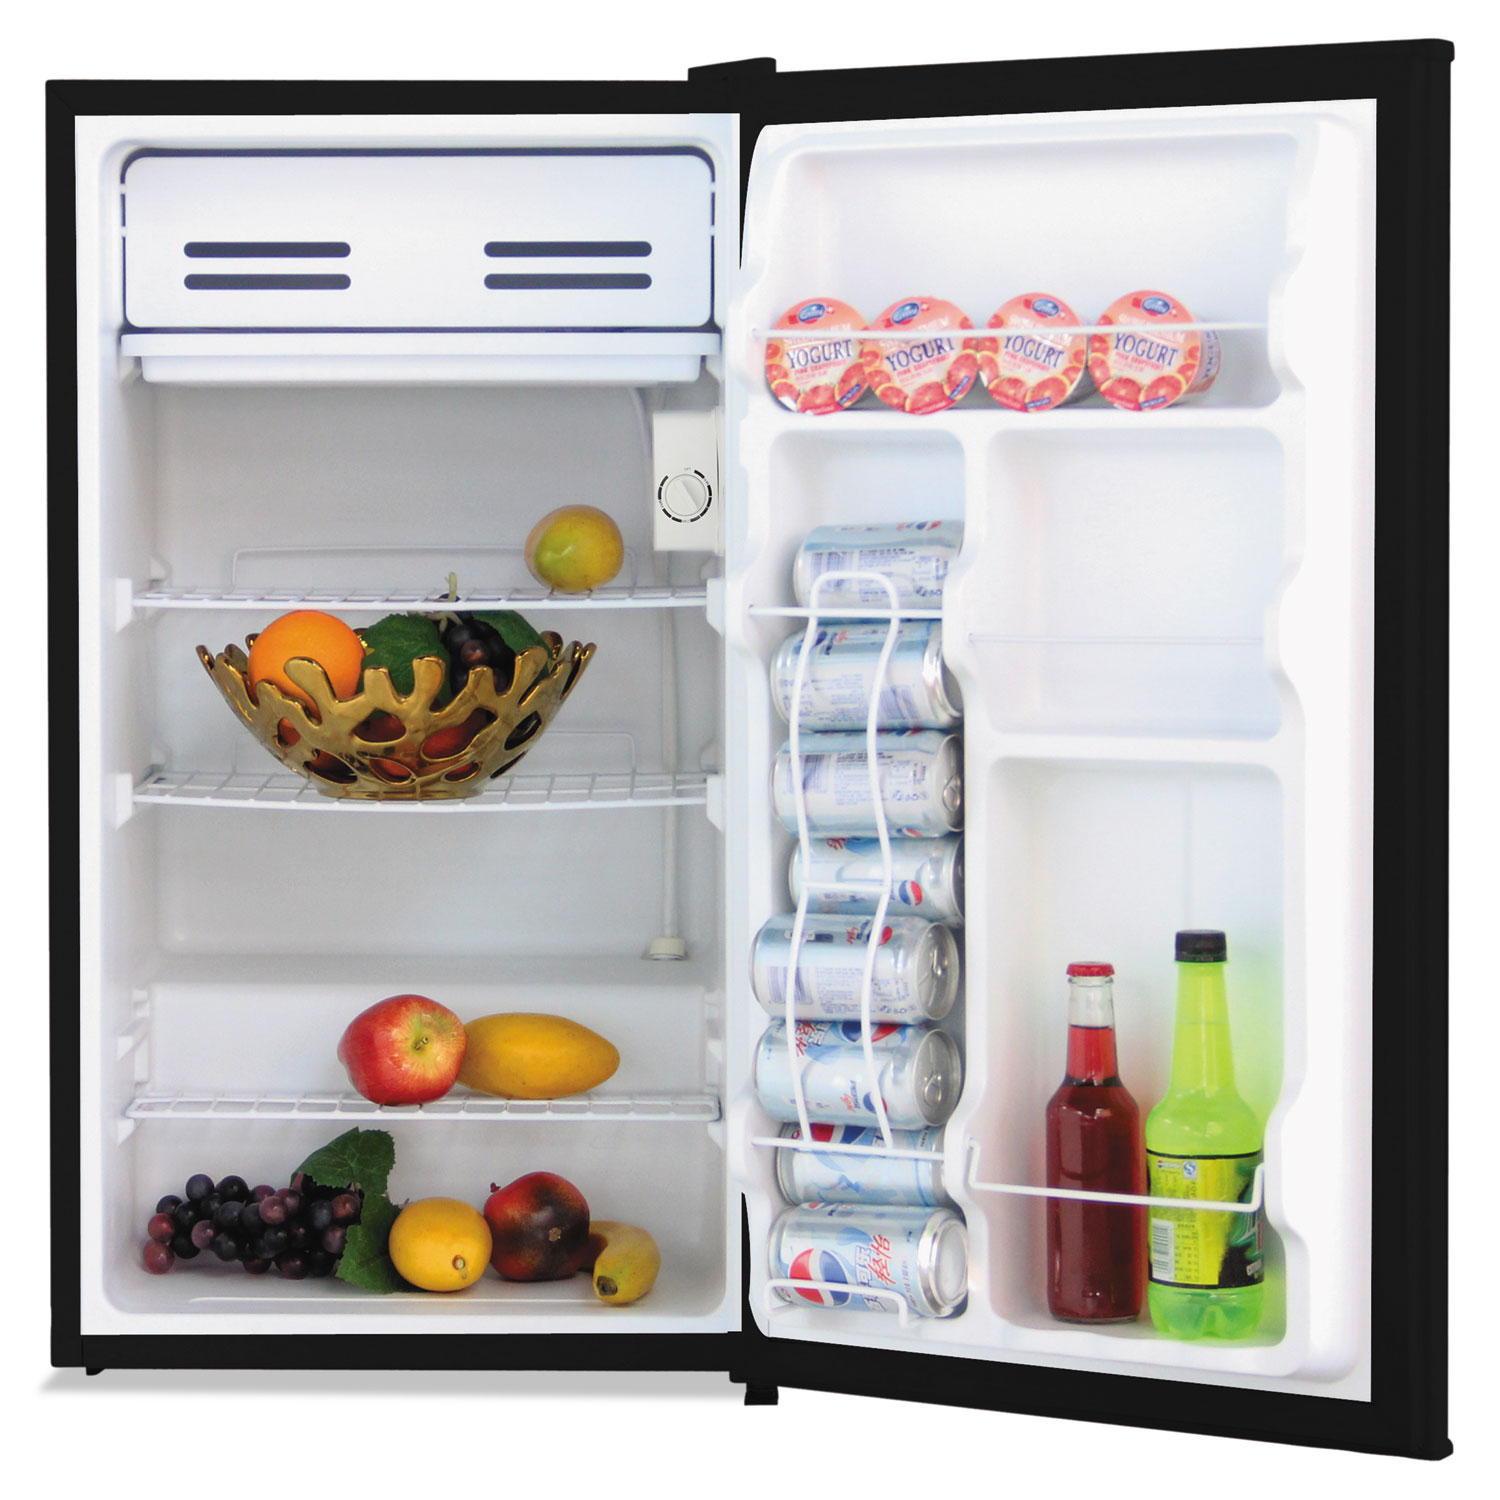 3.3 Cu. Ft. Refrigerator with Chiller Compartment, Black